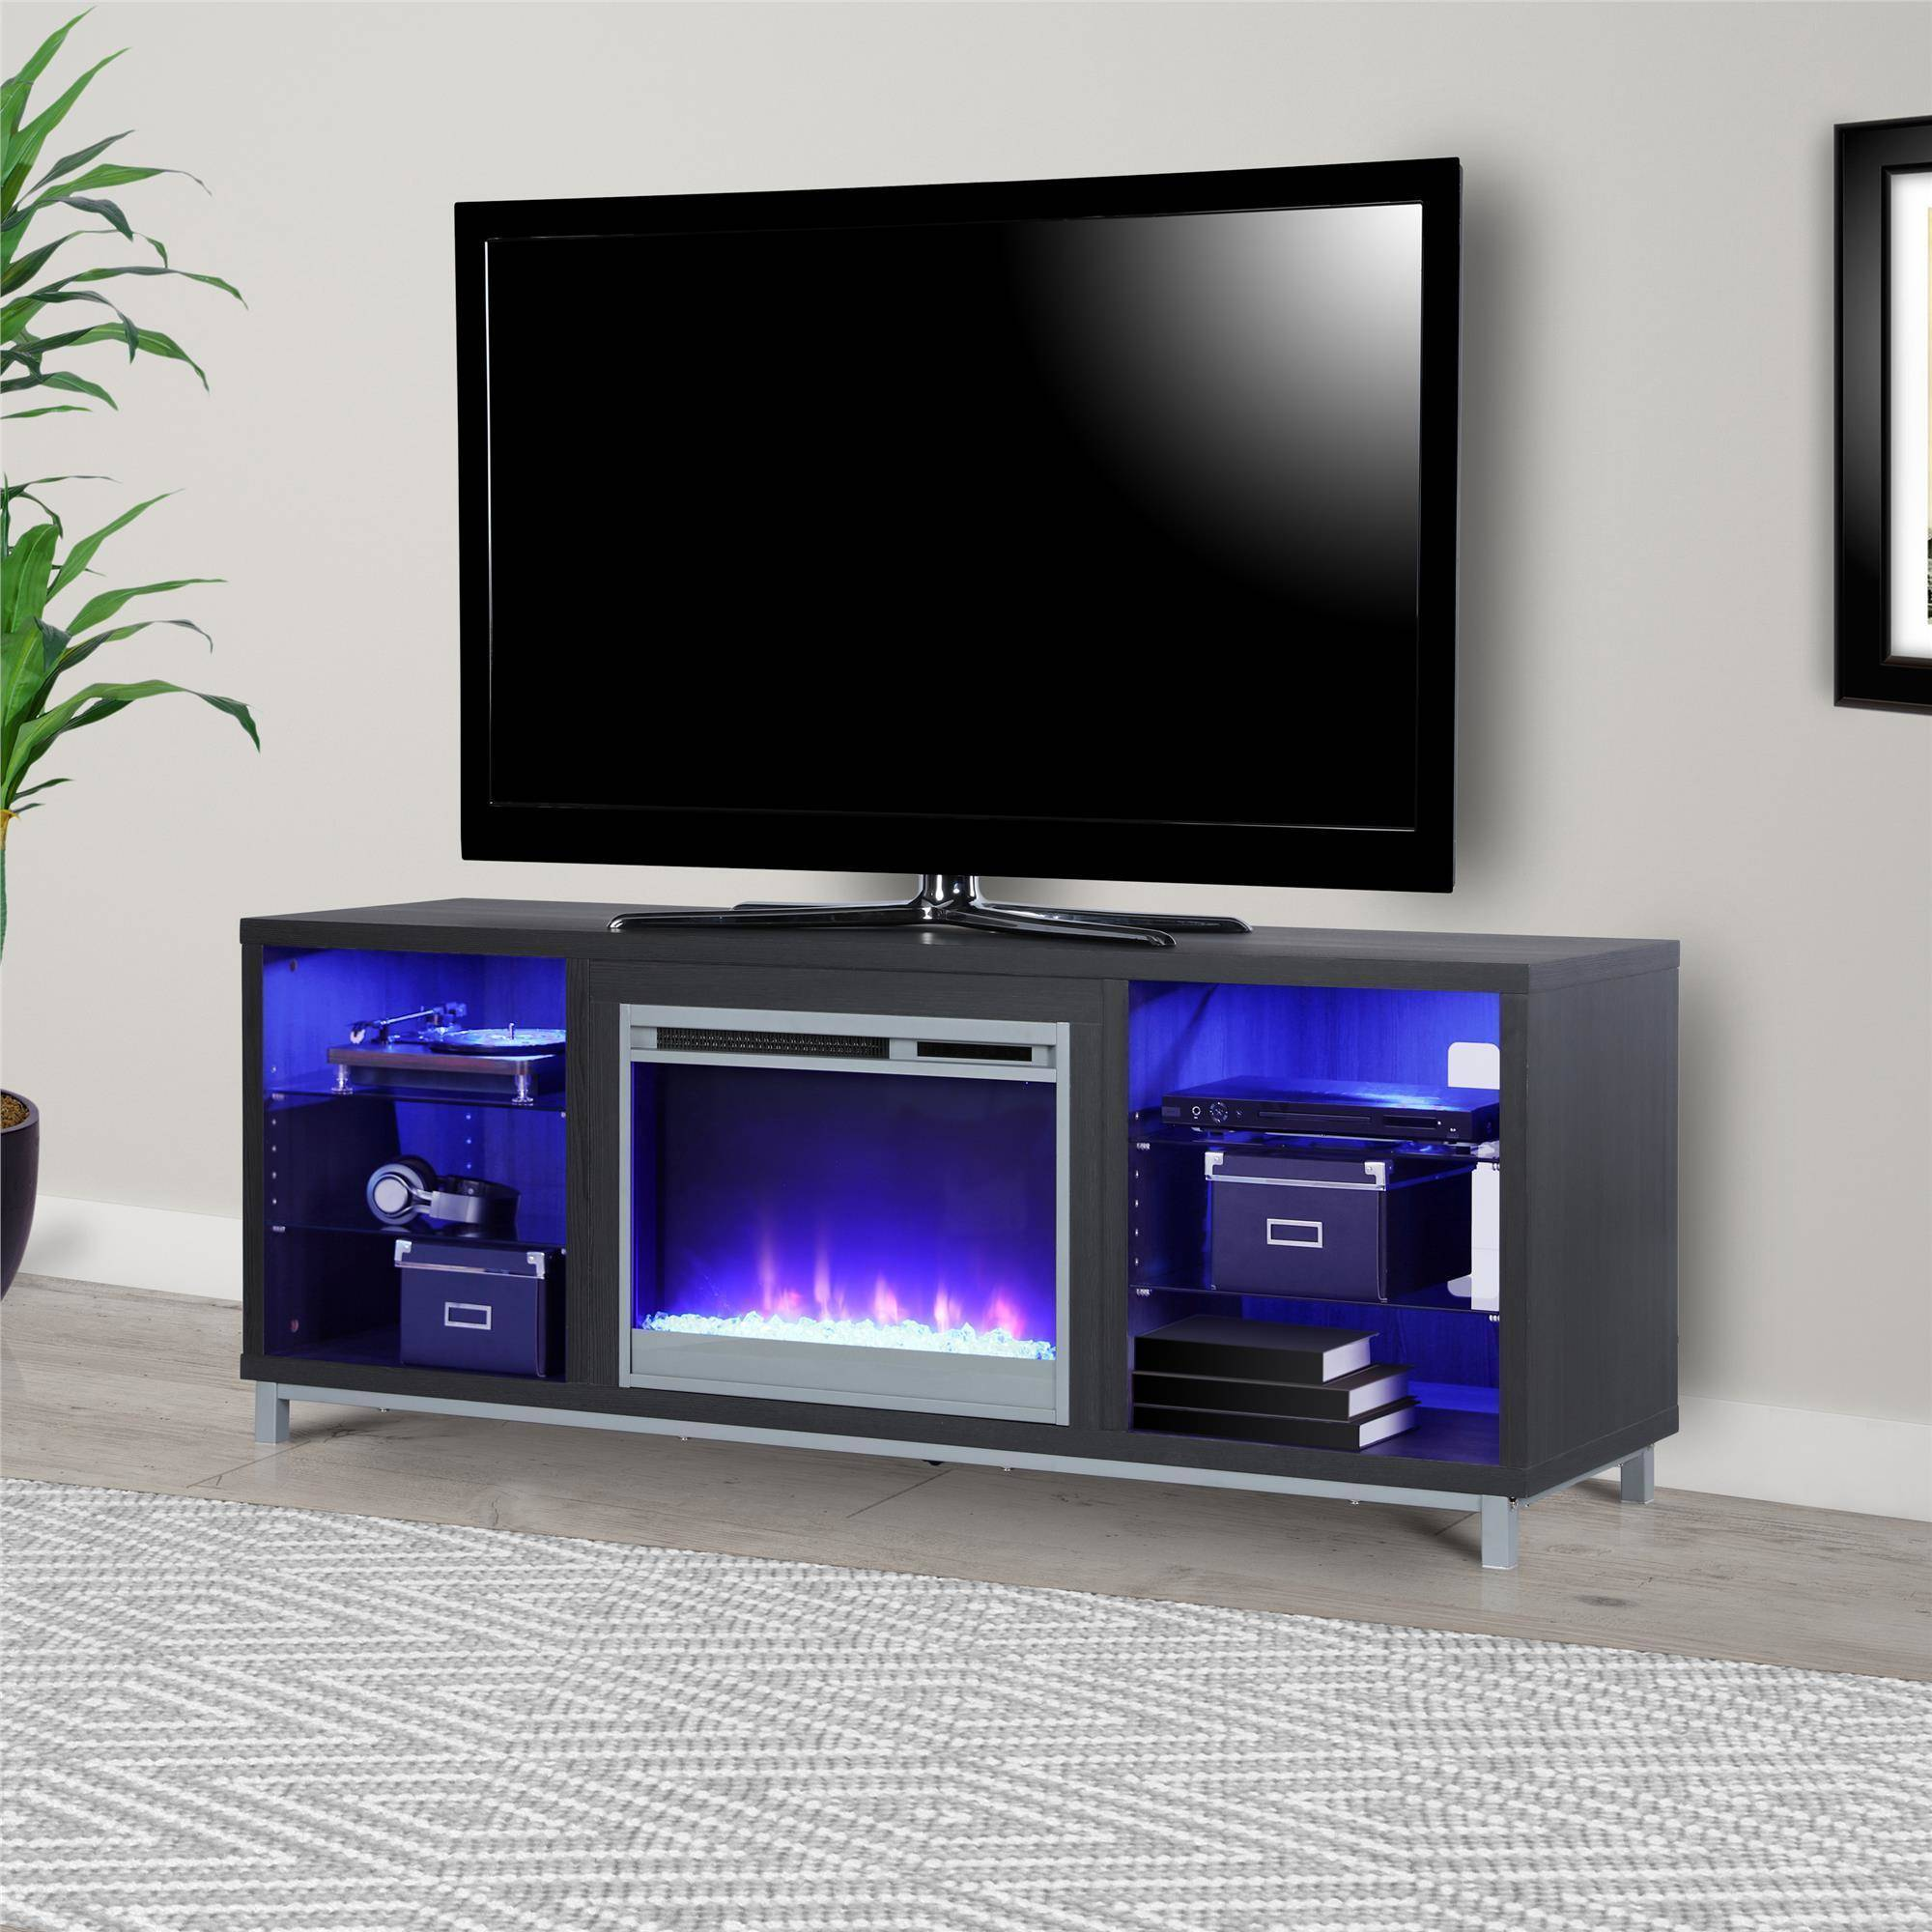 Ameriwood Home Lumina Fireplace Tv Stand Beautiful Ameriwood Home Lumina Fireplace Tv Stand for Tvs Up to 70